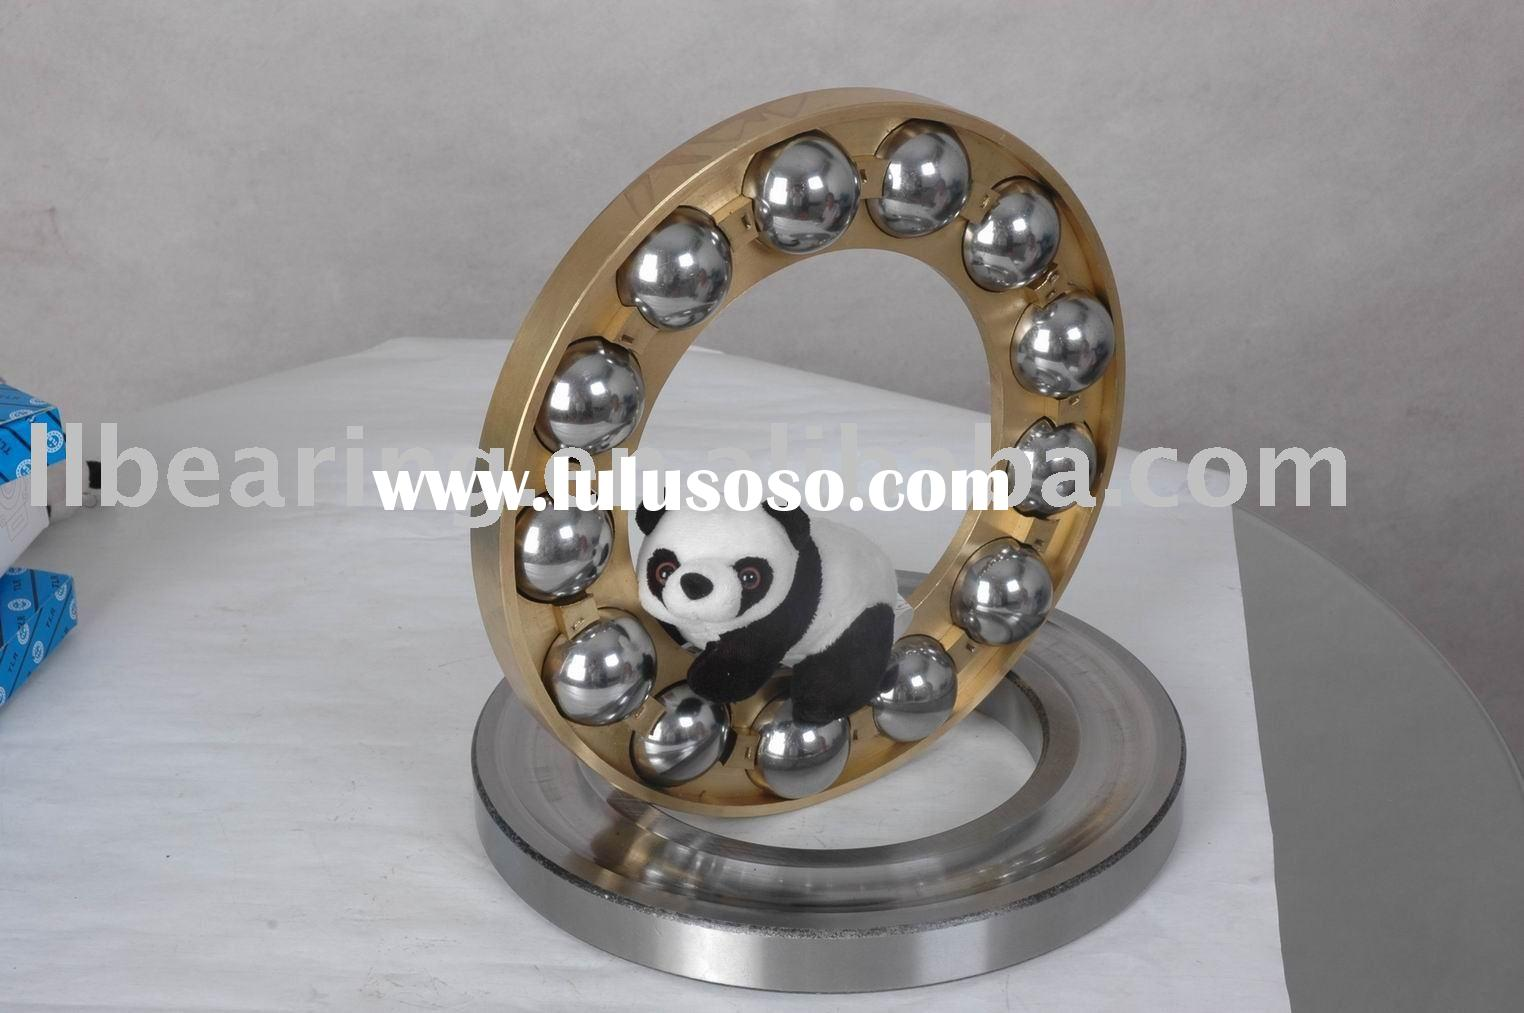 nsk bearing/thrust ball bearing -5116